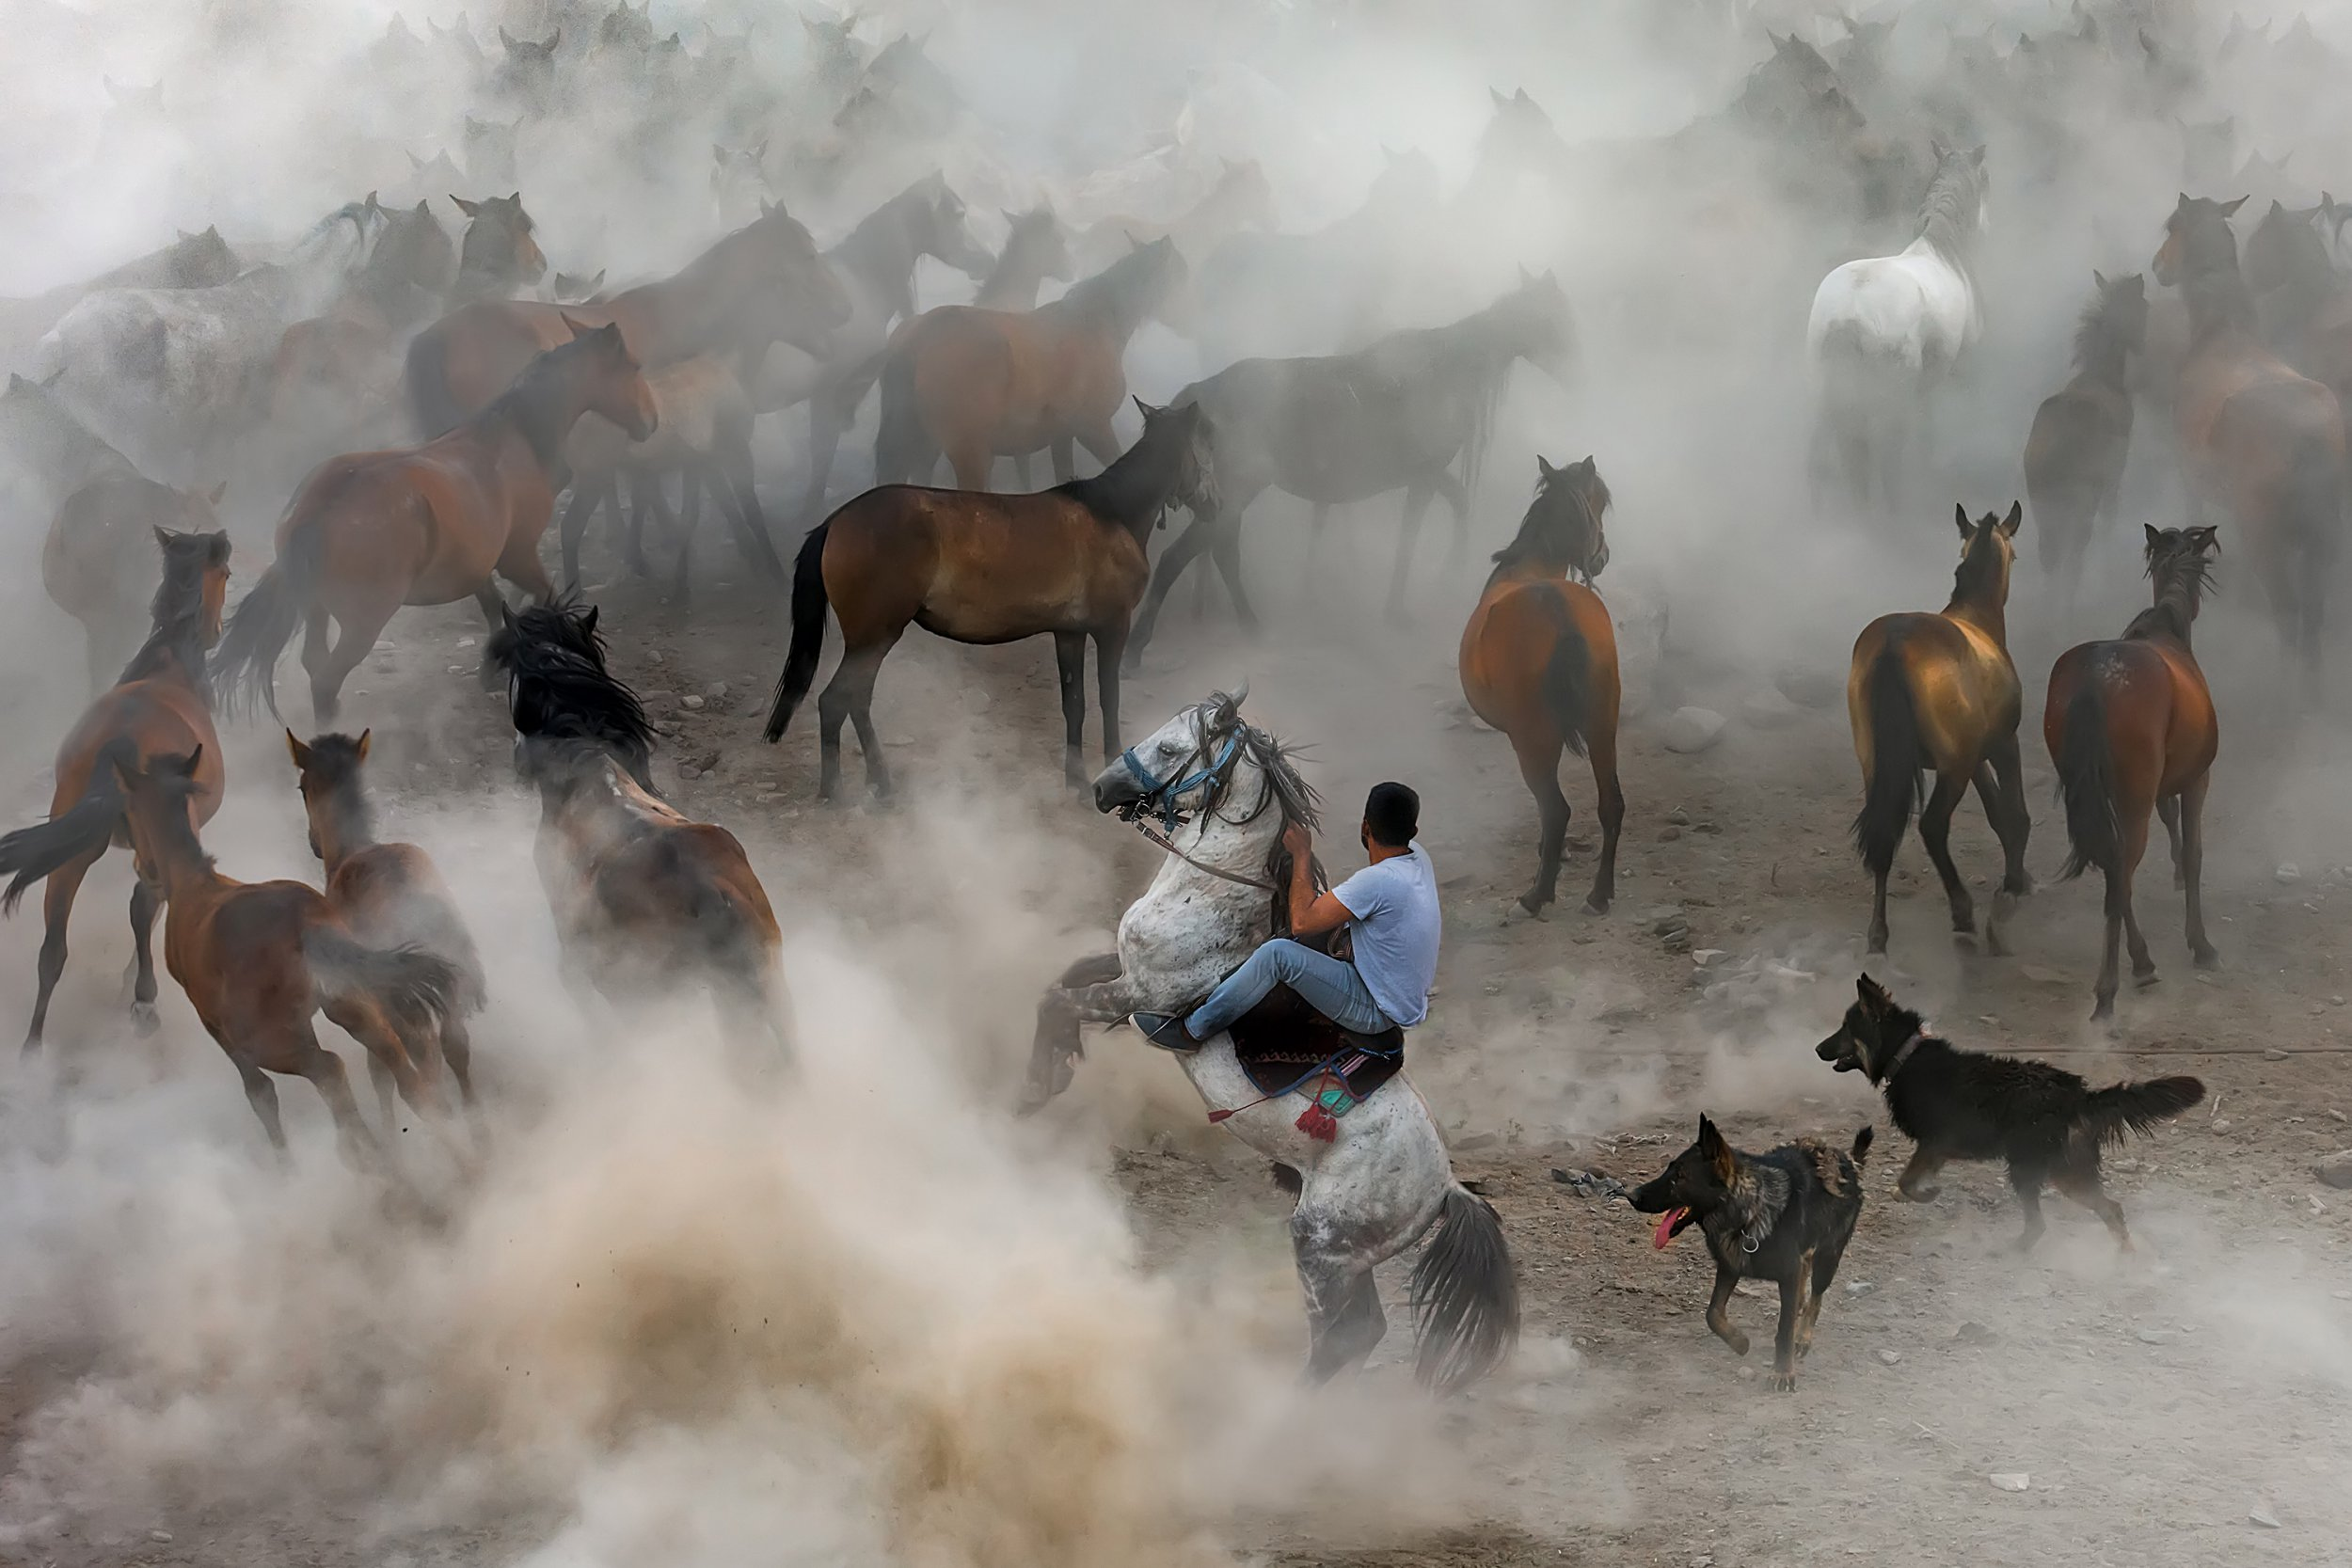 You have to see this year's stunning Sony World Photography Award submissions